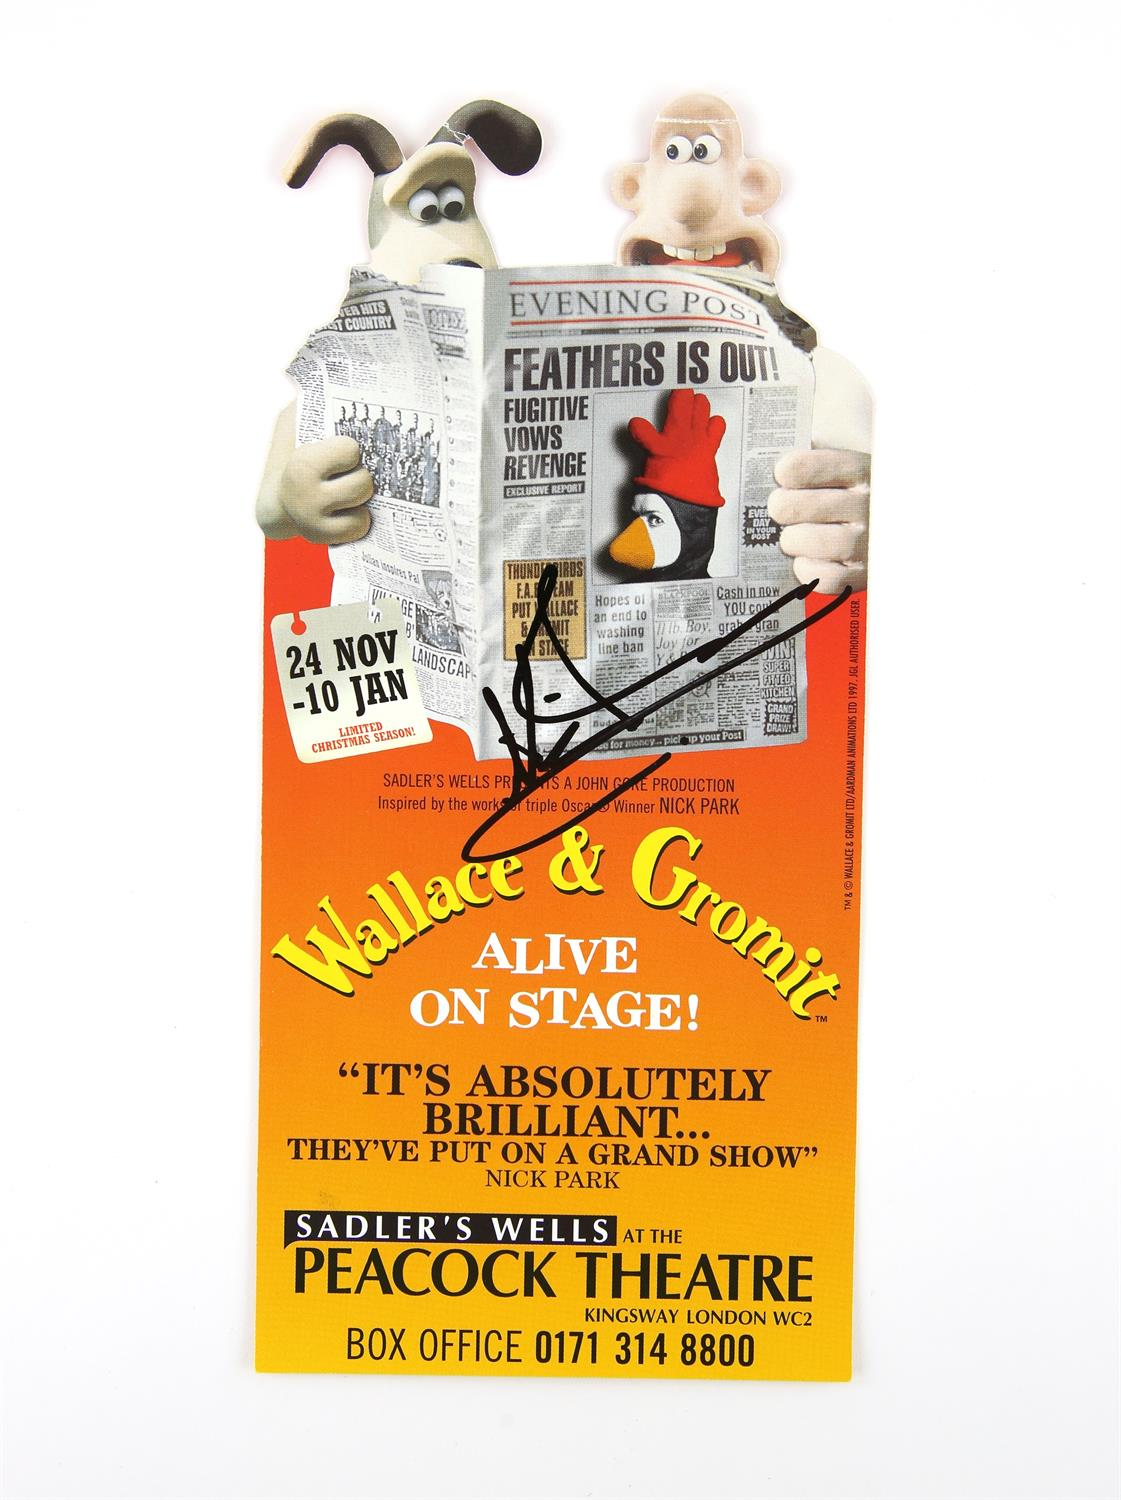 Nick Park - Aardman Animations 'Wallace & Gromit Alive On Stage!' - autographed leaflet for the